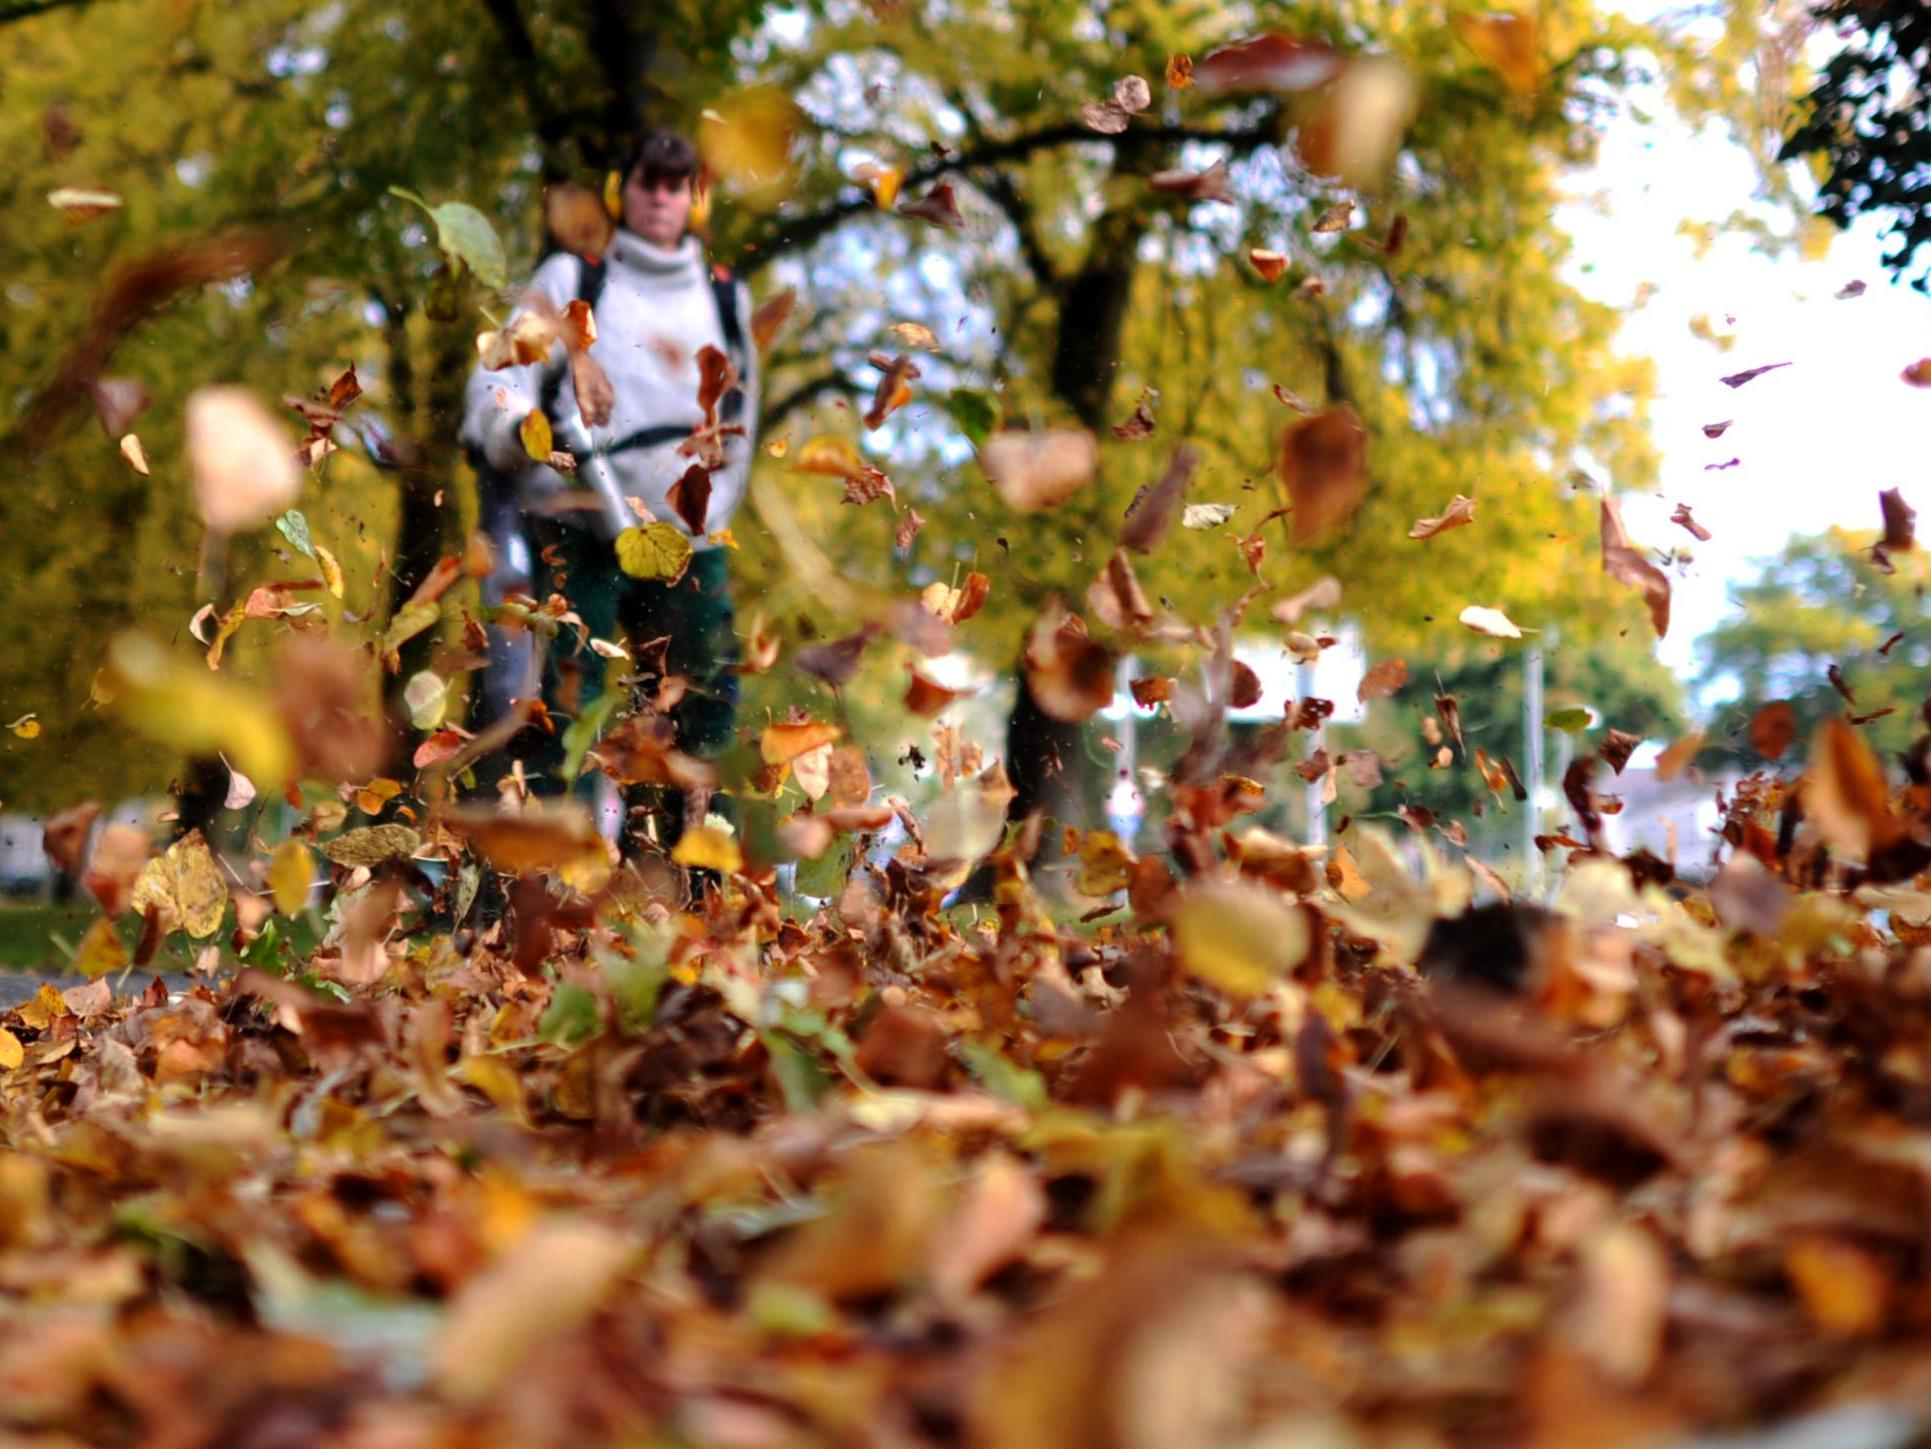 Leaf blowers 'fatal' to insects and should be avoided, German government warns